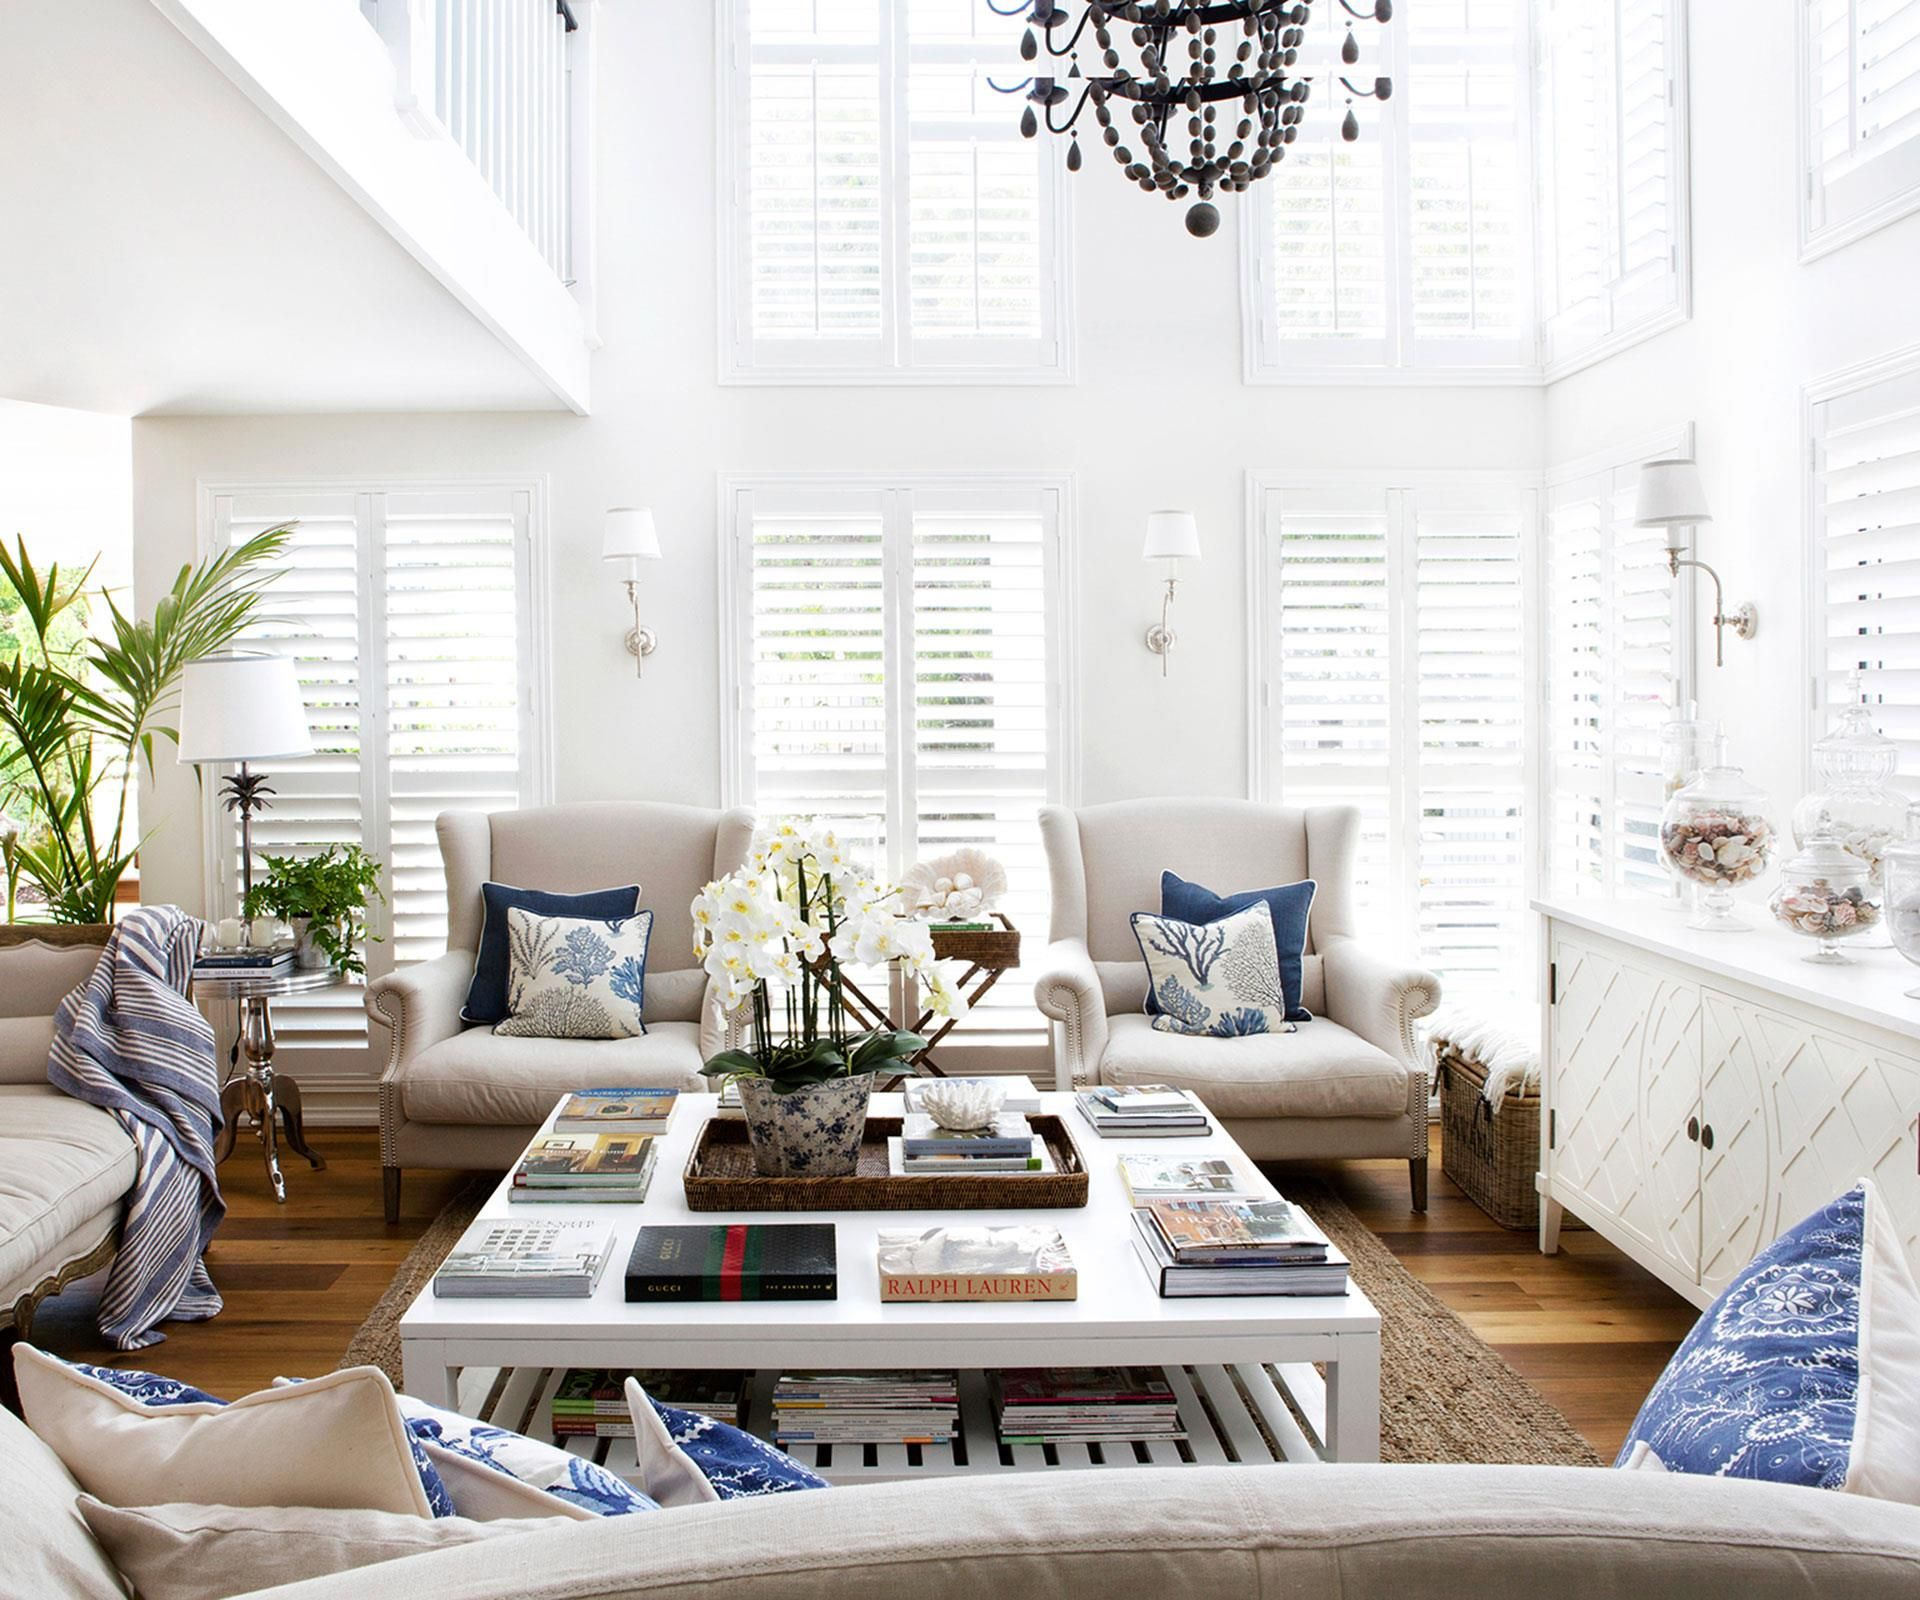 A clear vision turned a waterside home into an elegant for Hampton style interior decorating ideas